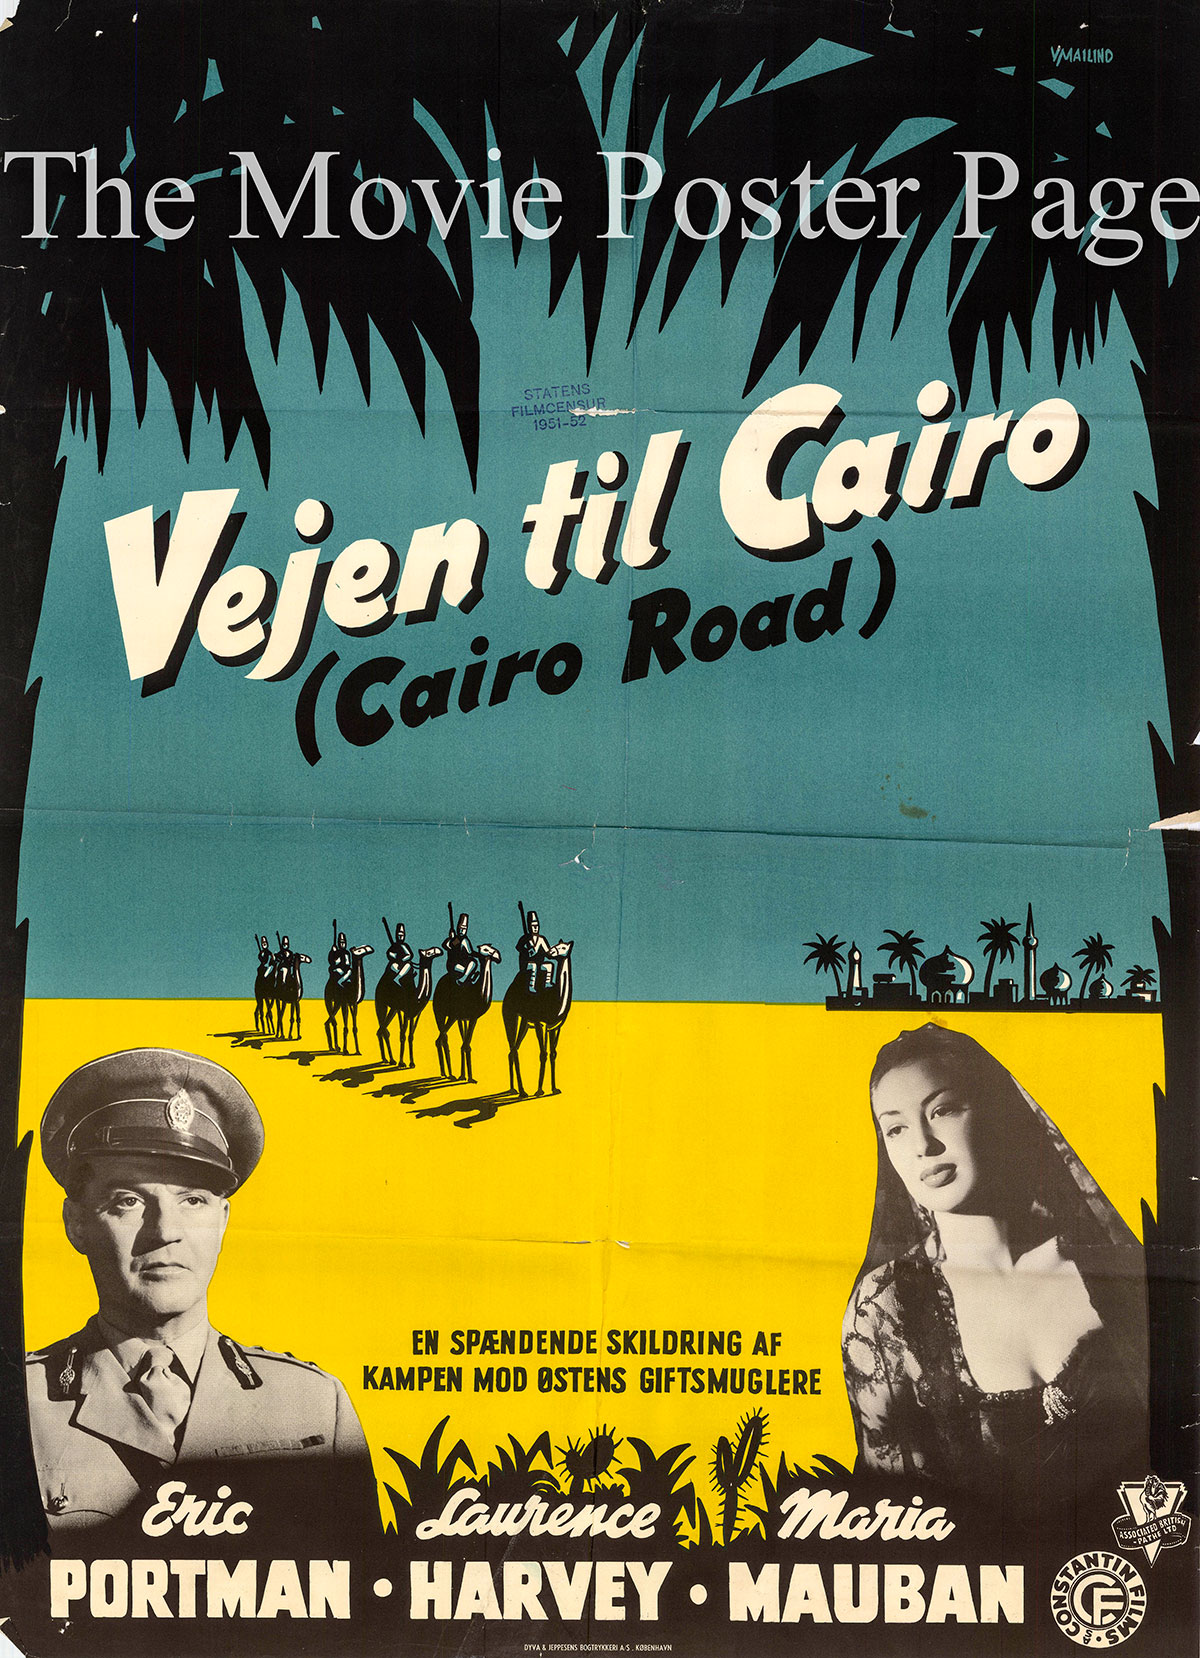 Pictured is a Danish promotional poster for the 1950 David MacDonald film Cairo Road starring Eric Portman.